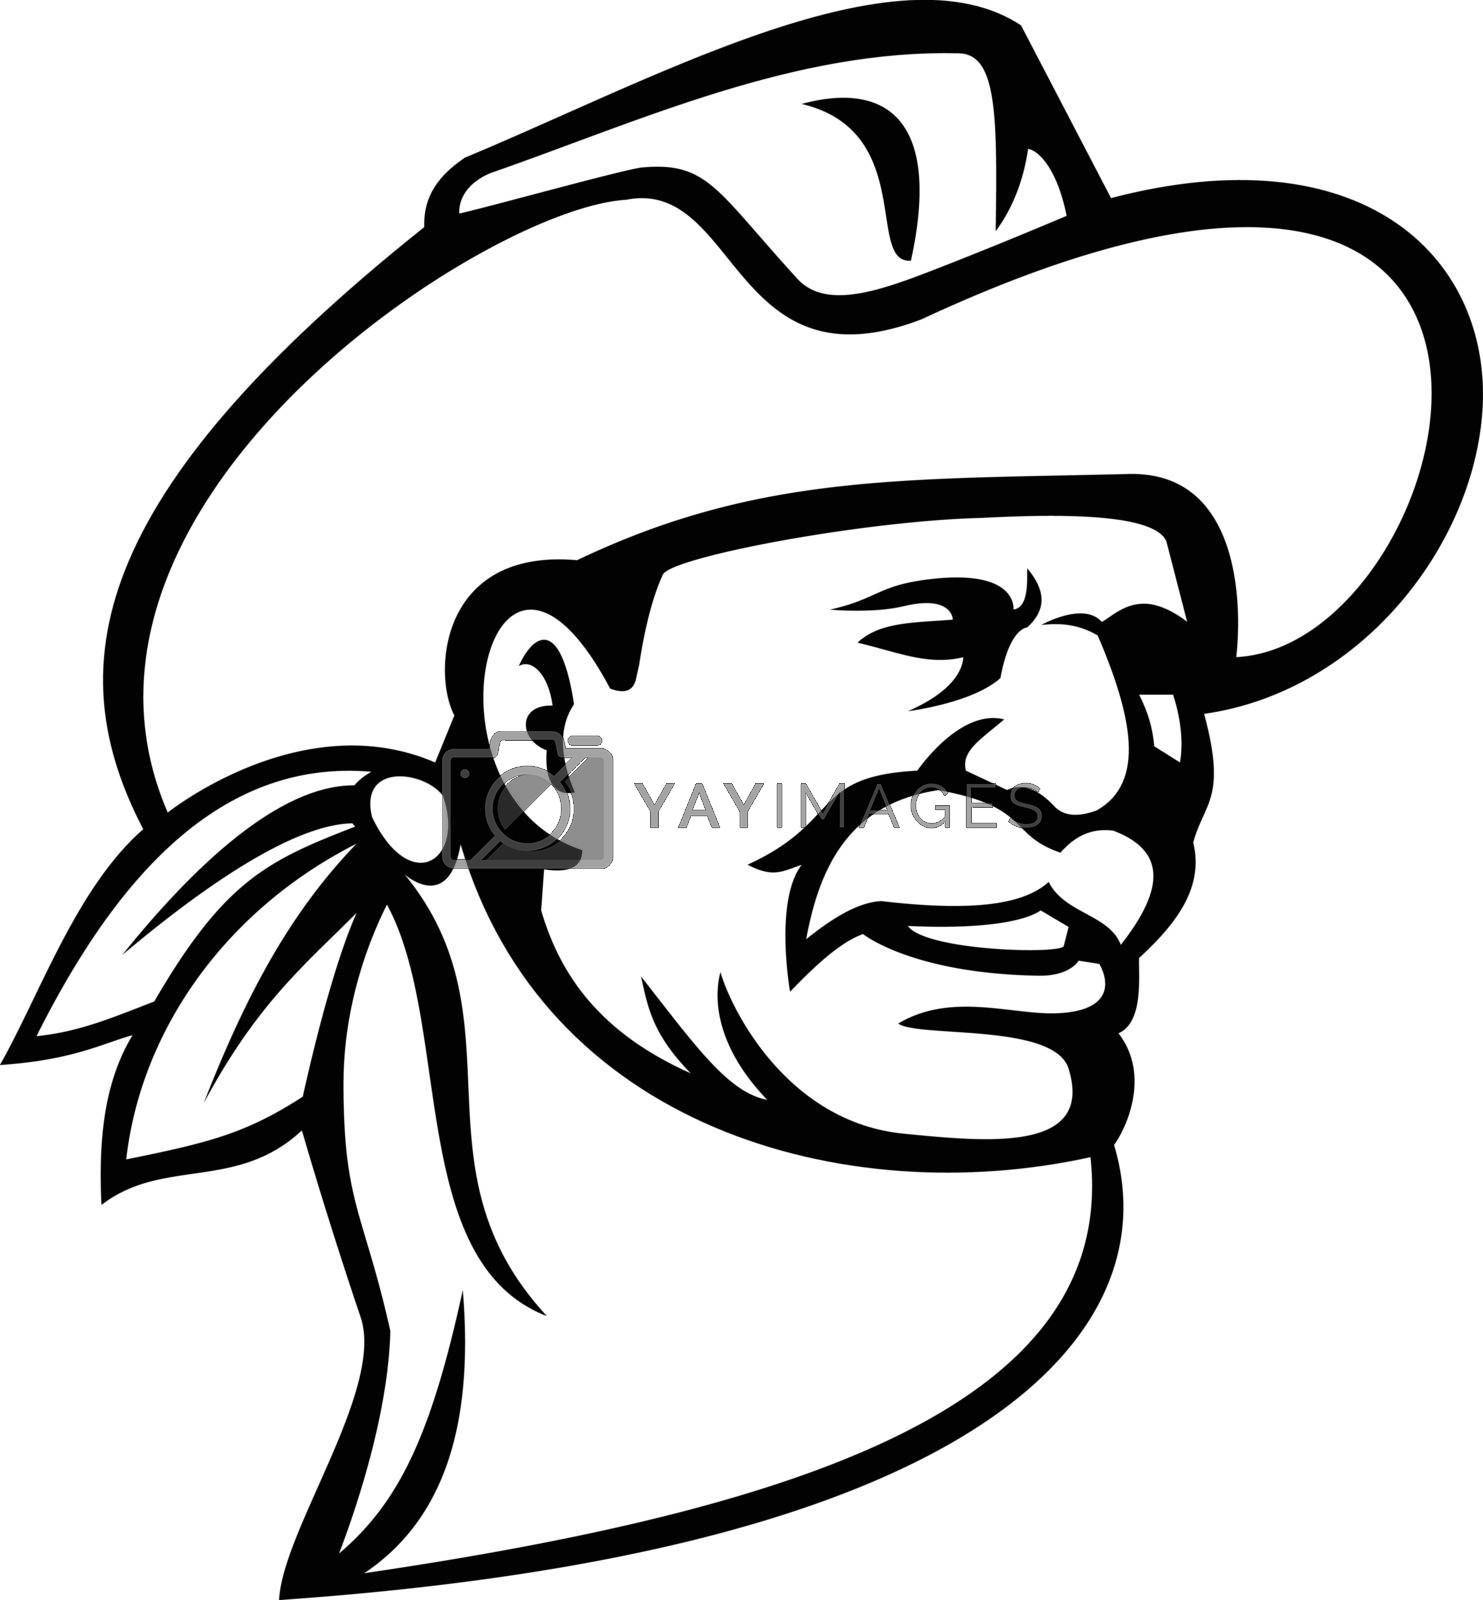 Mascot illustration of an American cowboy wearing a hat, mustache and neckerchief or bandana looking to side on isolated background in retro black and white style.